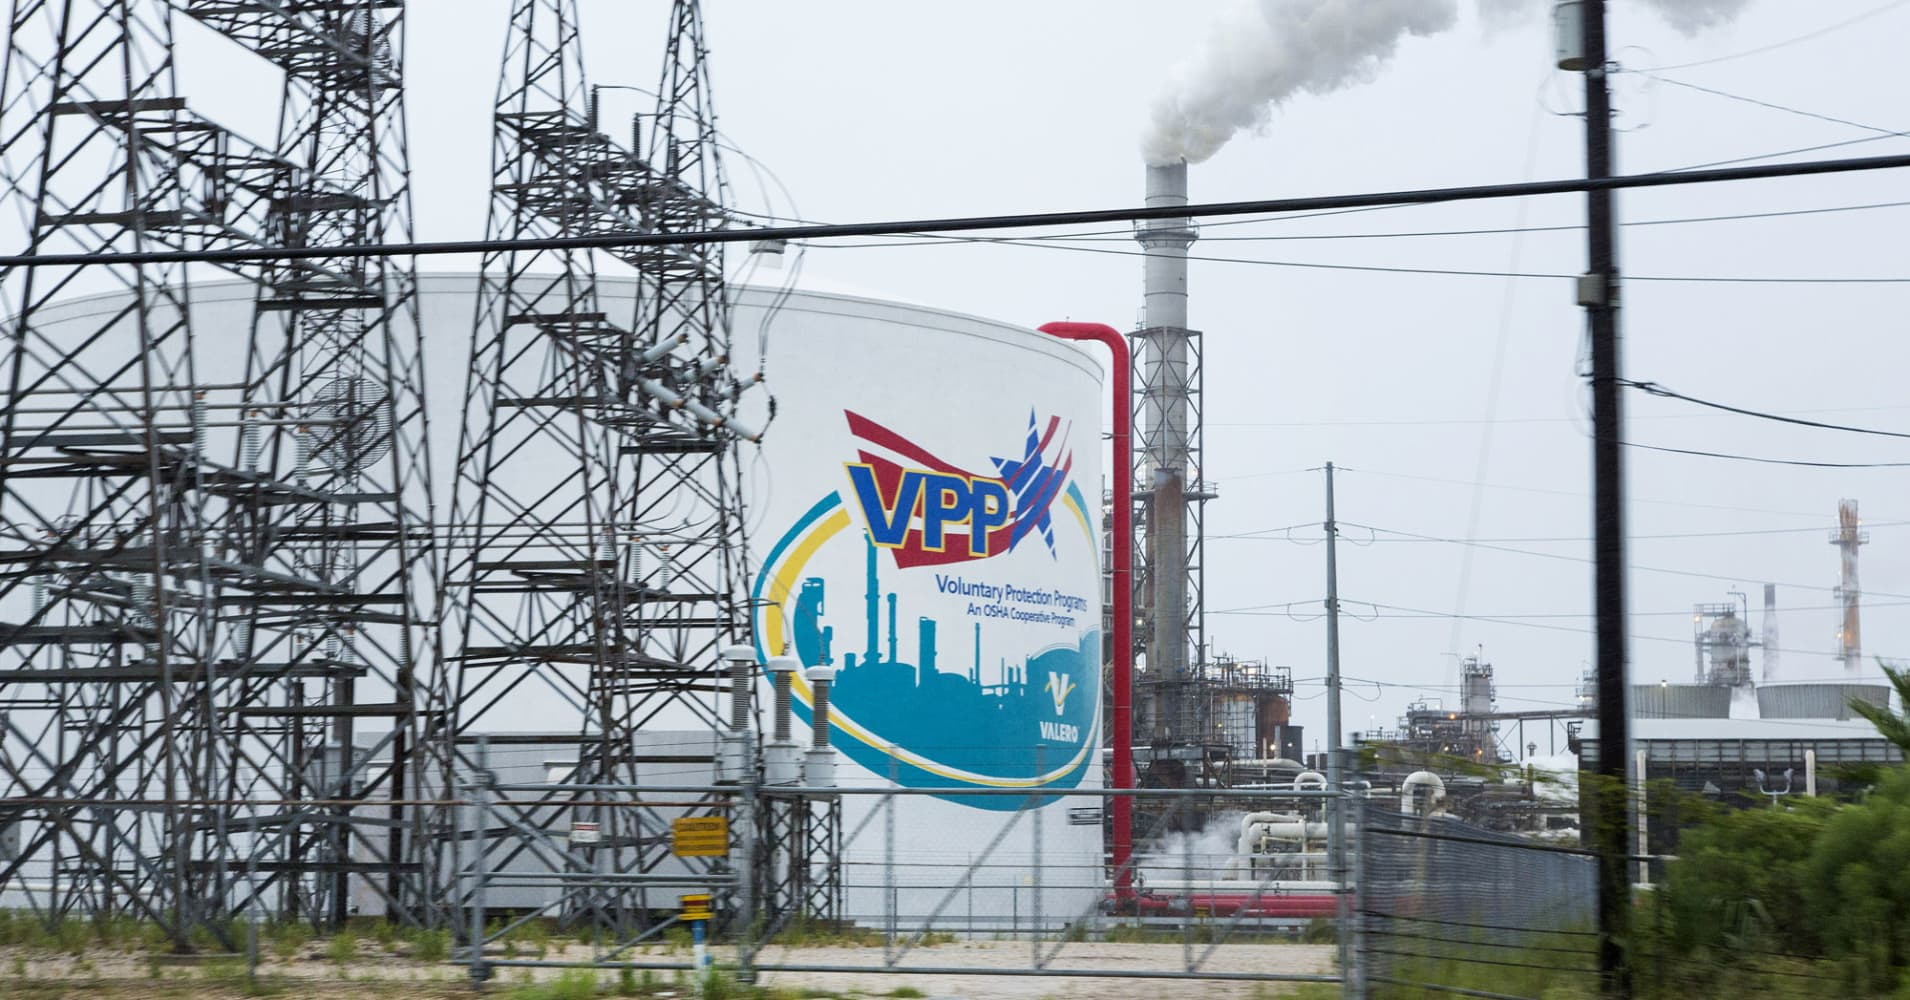 Vlo Stock Quote Cramer's Charts Suggest Refinery Shutdowns Could Mean Gains For Energy